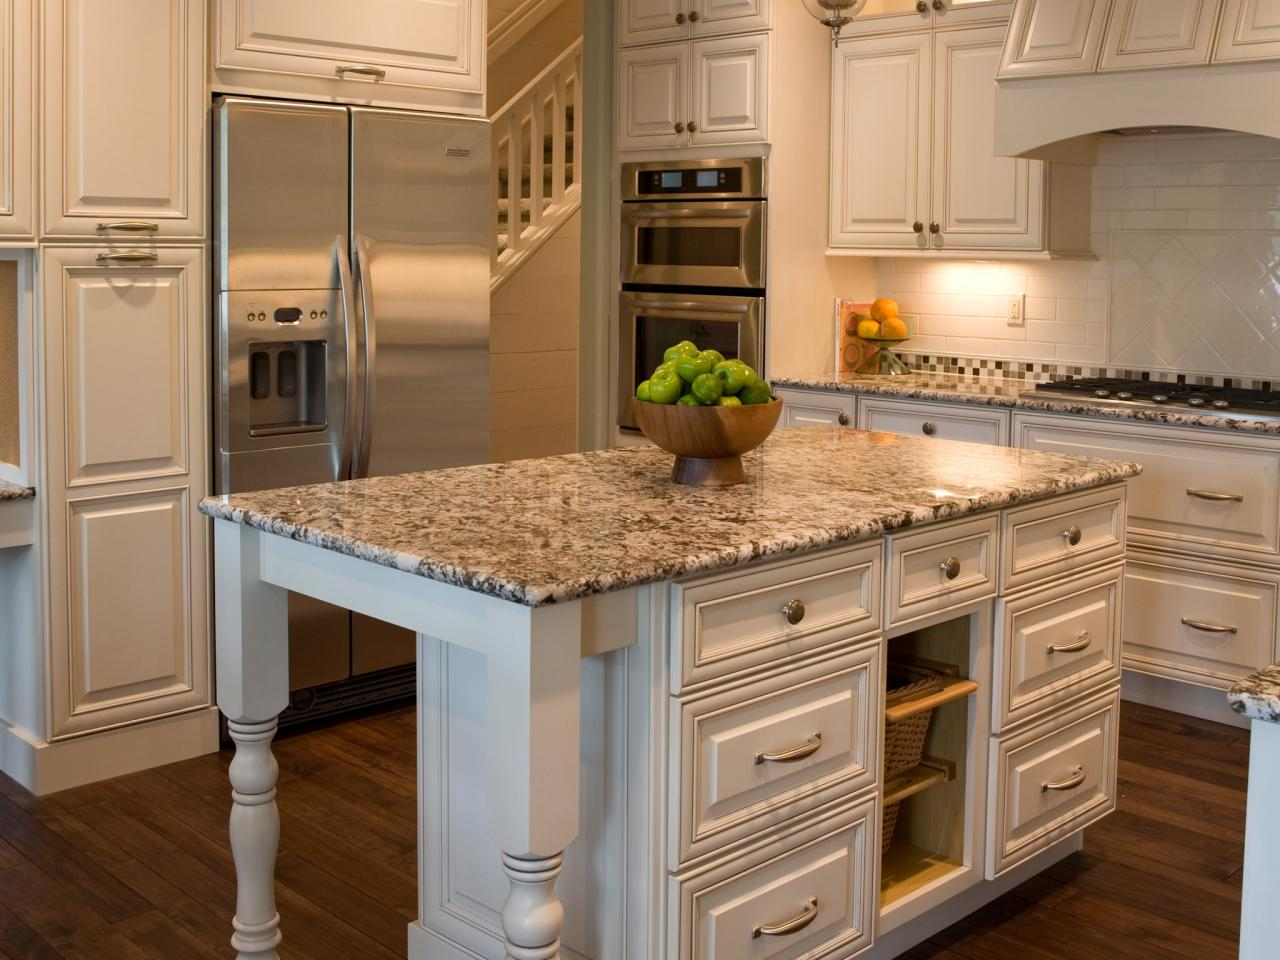 Man Made Quartz Countertops Cost Granite Countertop Prices Pictures Ideas From Hgtv Hgtv